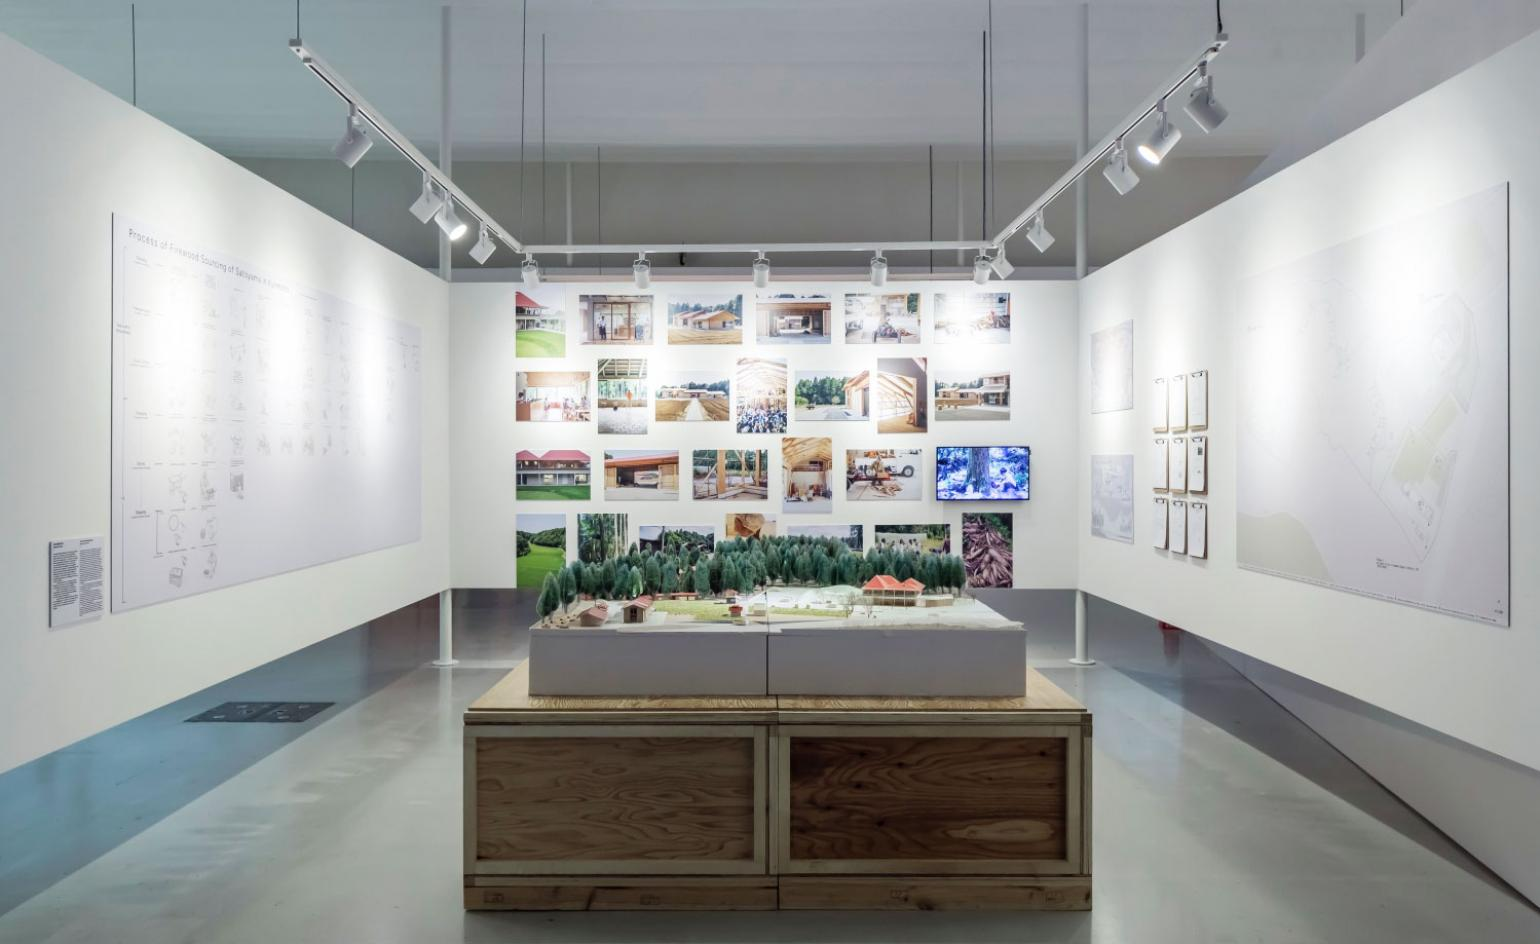 Seoul architecture and urbanism biennale calls out for collective city-making